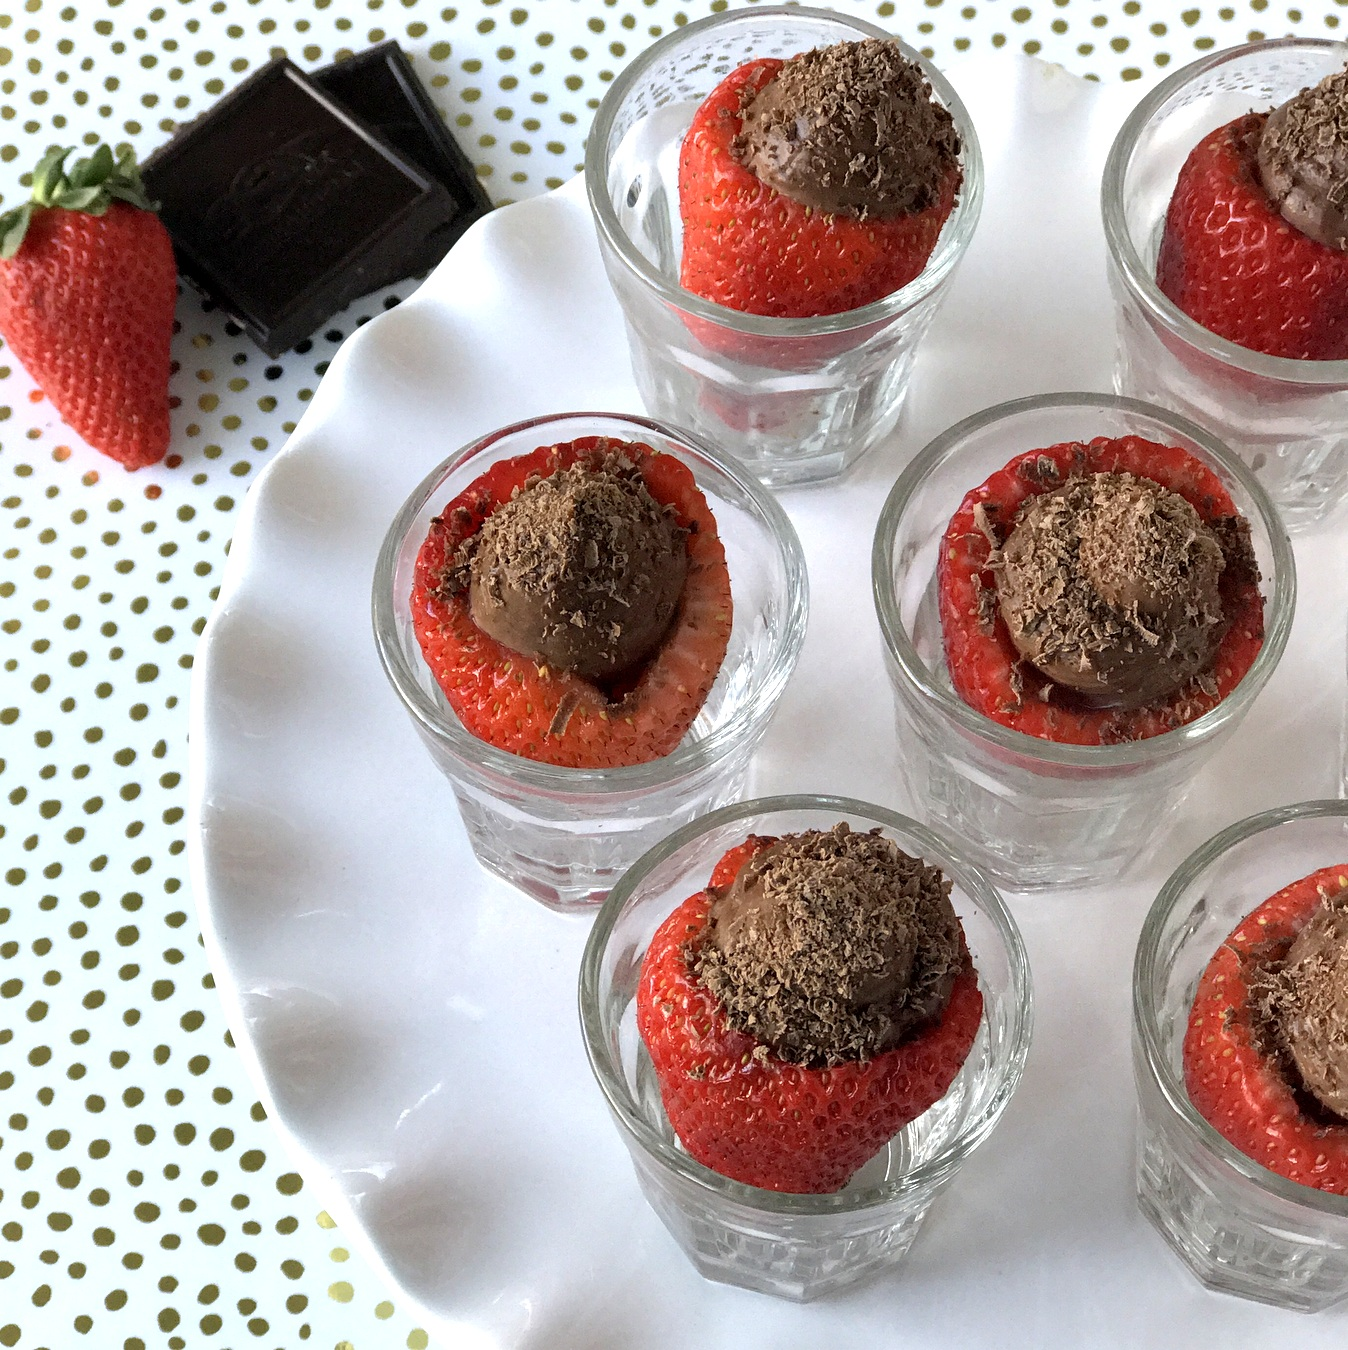 strawberries with chocolate mousse (sugar free!)